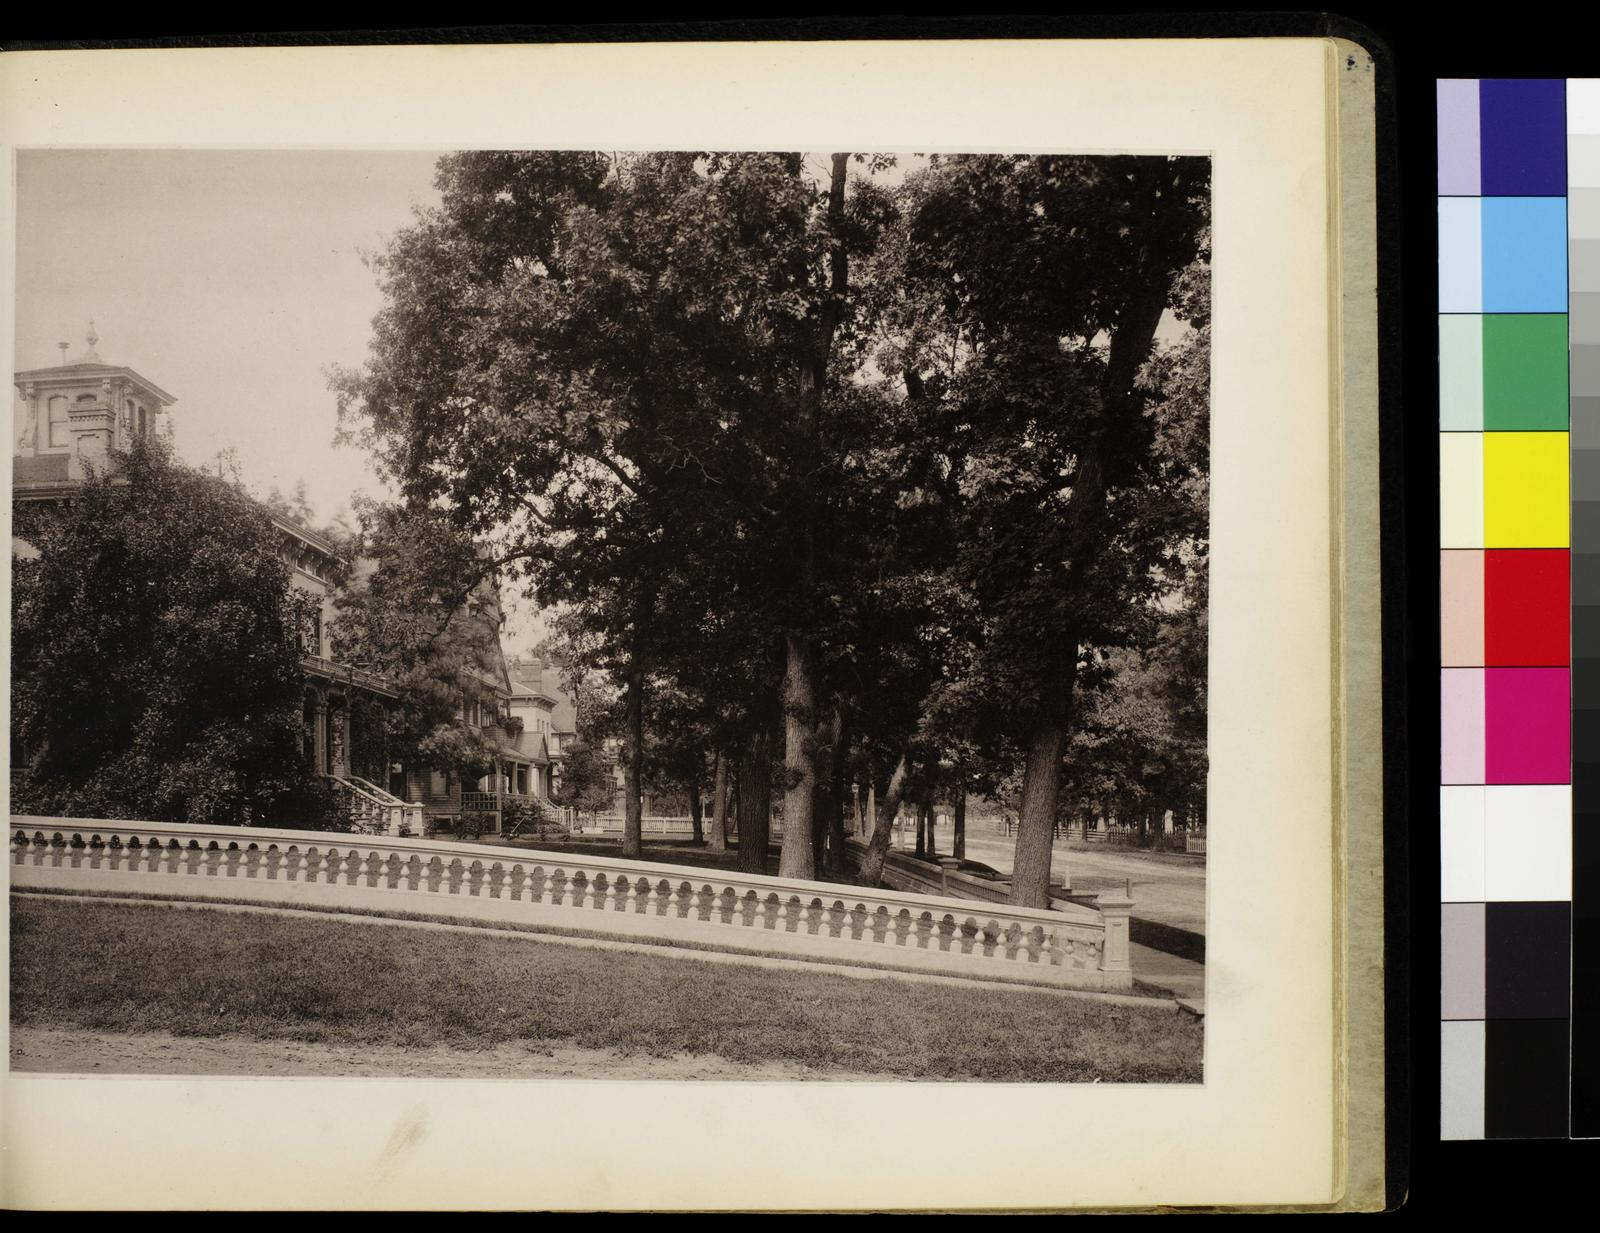 Photographic views of picturesque Evanston, state of Illinois. Cor. Davis Street and Ridge Avenue. Versos